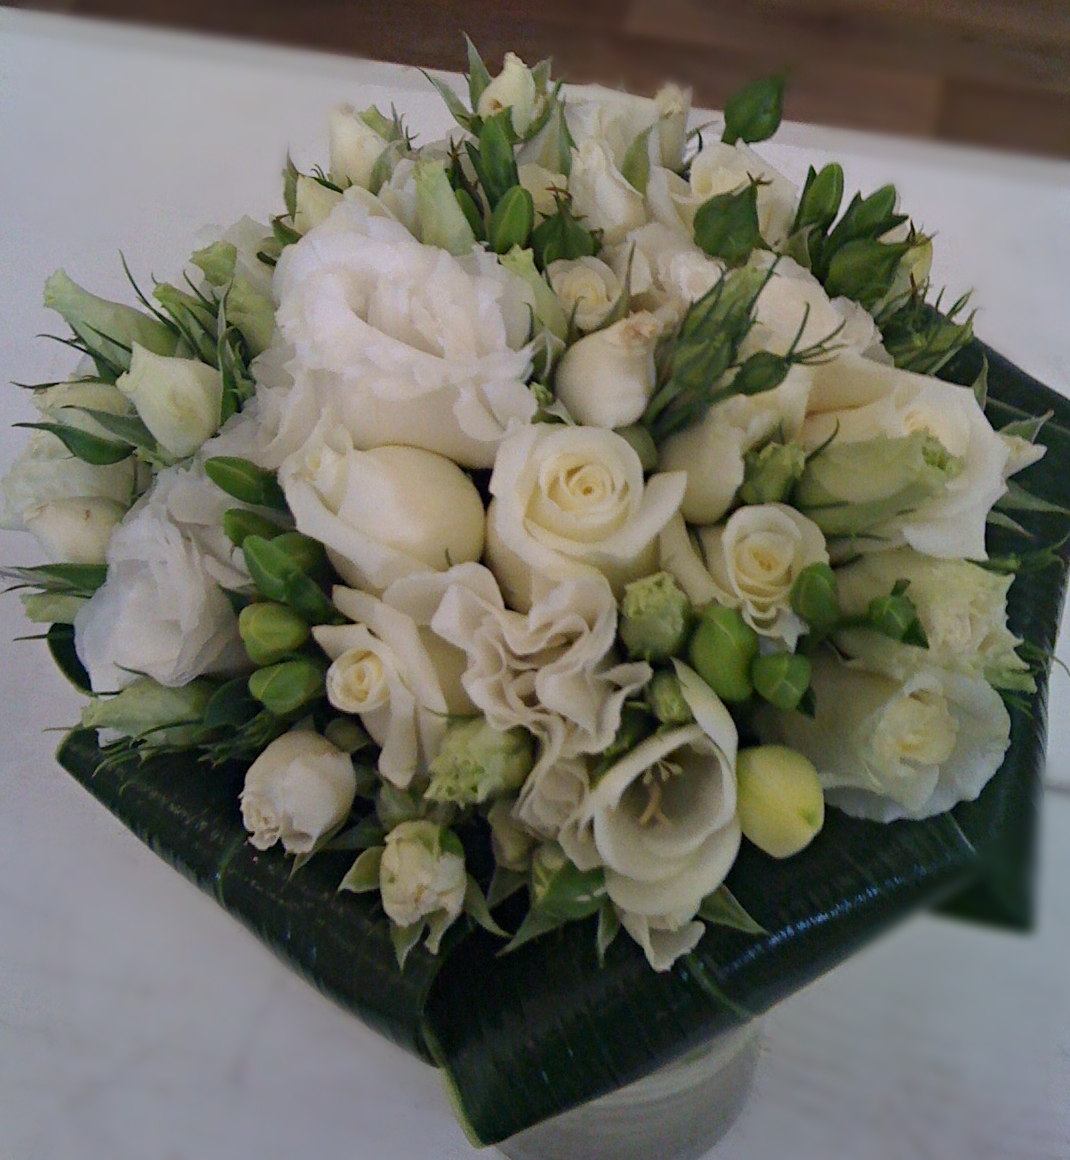 White bouquet of roses, tulips, freesia,lisianthus, and spray roses